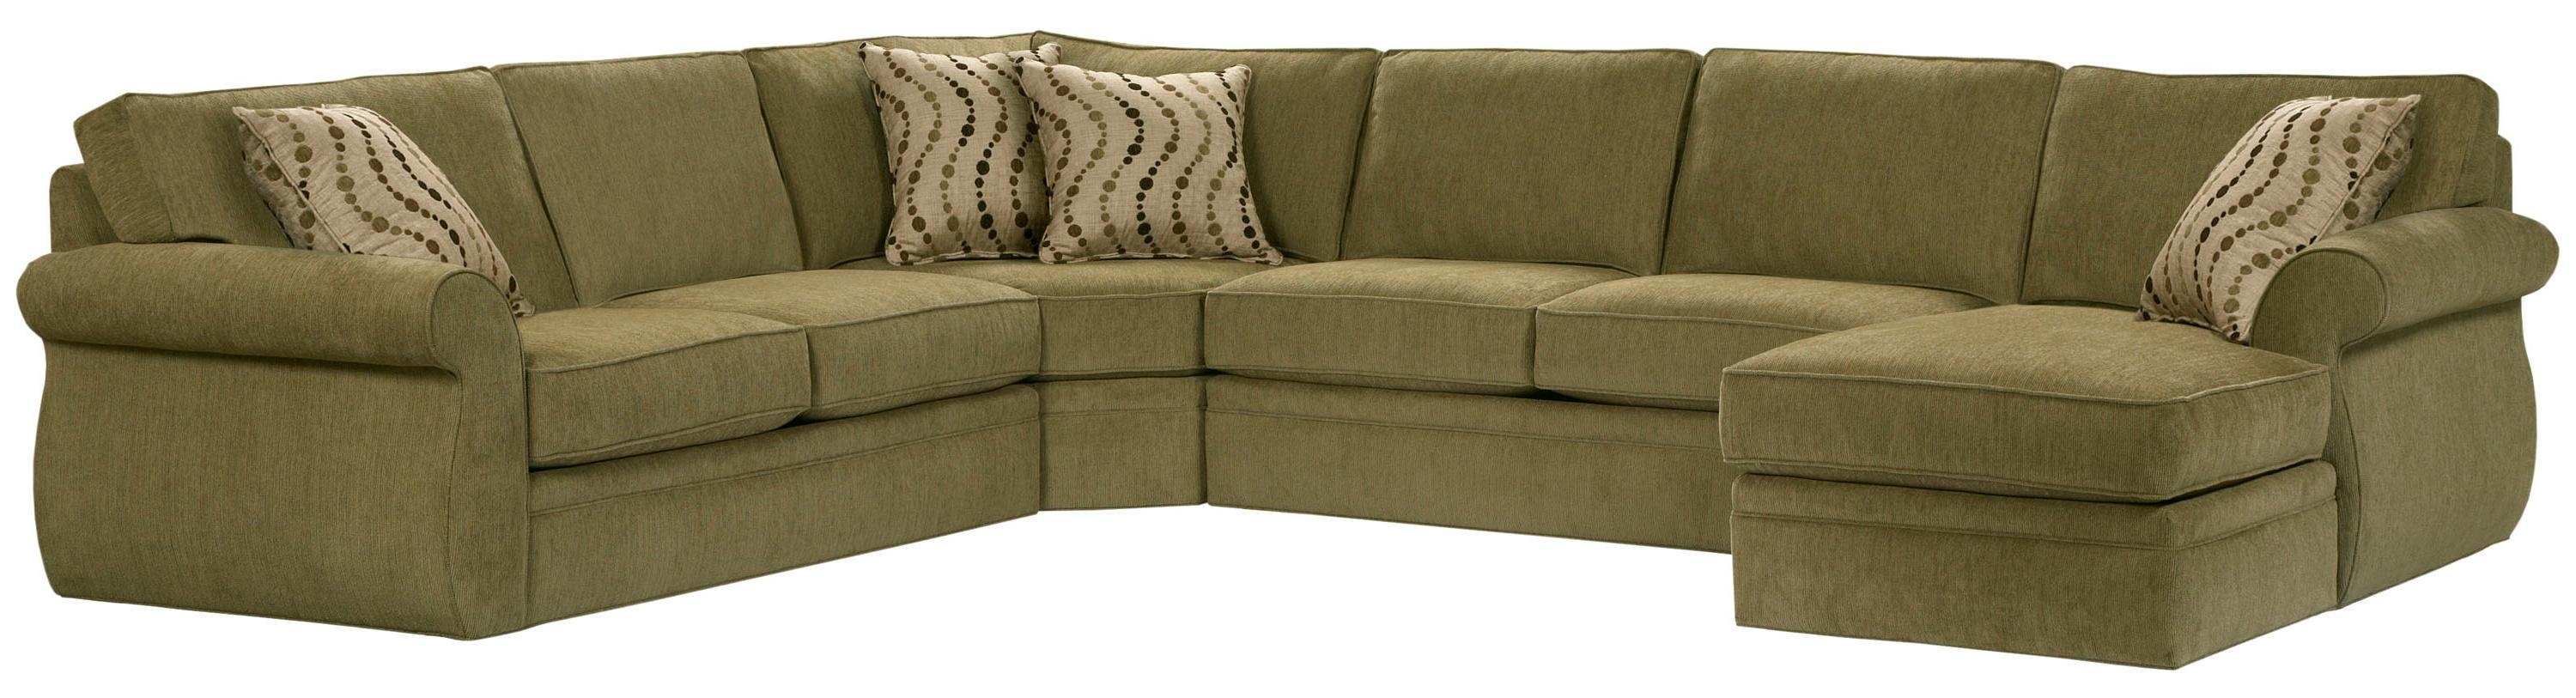 Broyhill Furniture Veronica Right Arm Facing Customizable Chaise Inside Broyhill Sectional Sofas (Image 8 of 15)